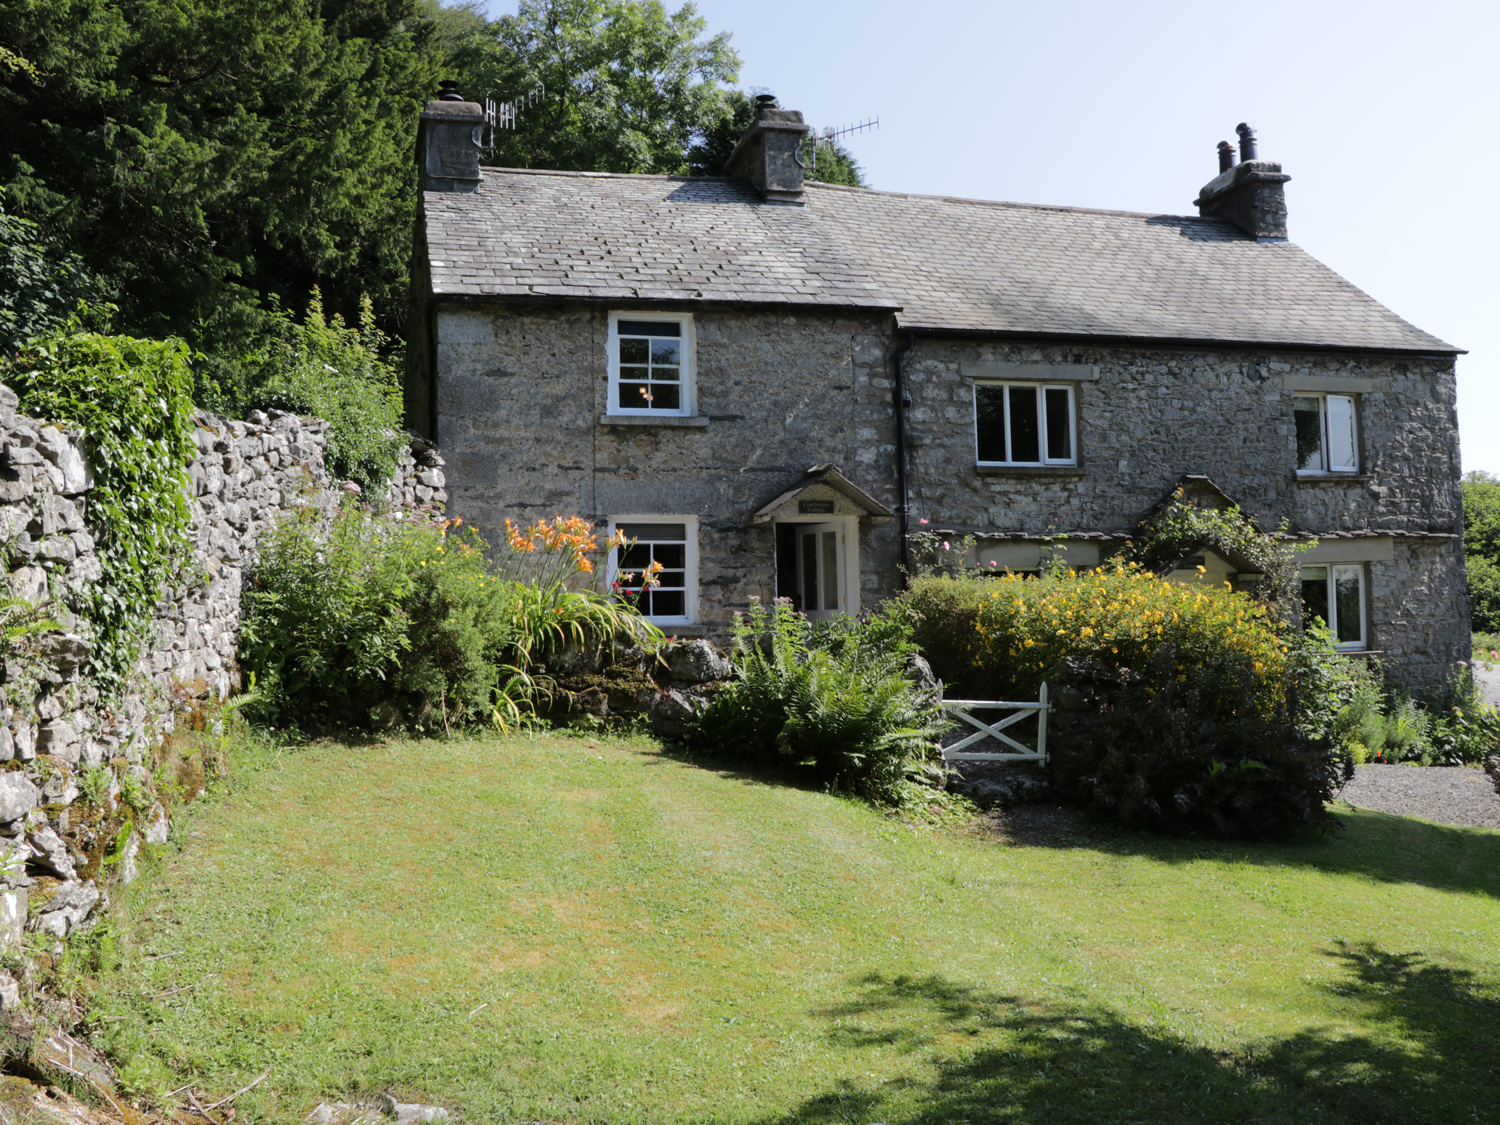 coachmans cottage a holiday cottage in cumbria england